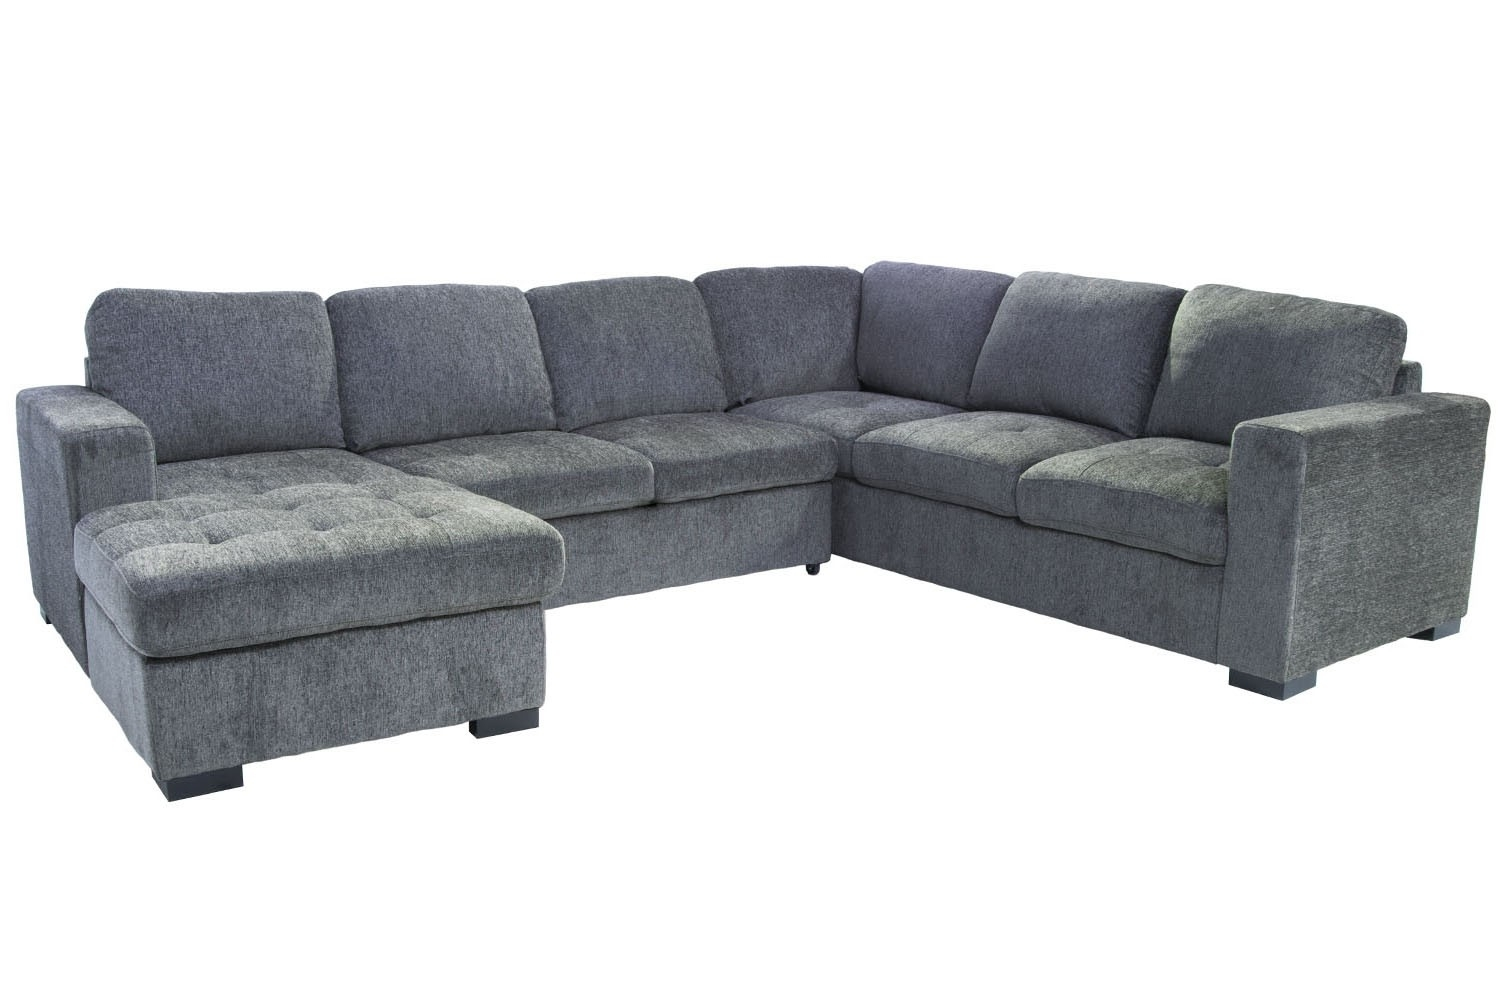 Sectional Sofas | Save Mor Online And In-Store with Aspen 2 Piece Sleeper Sectionals With Laf Chaise (Image 25 of 30)